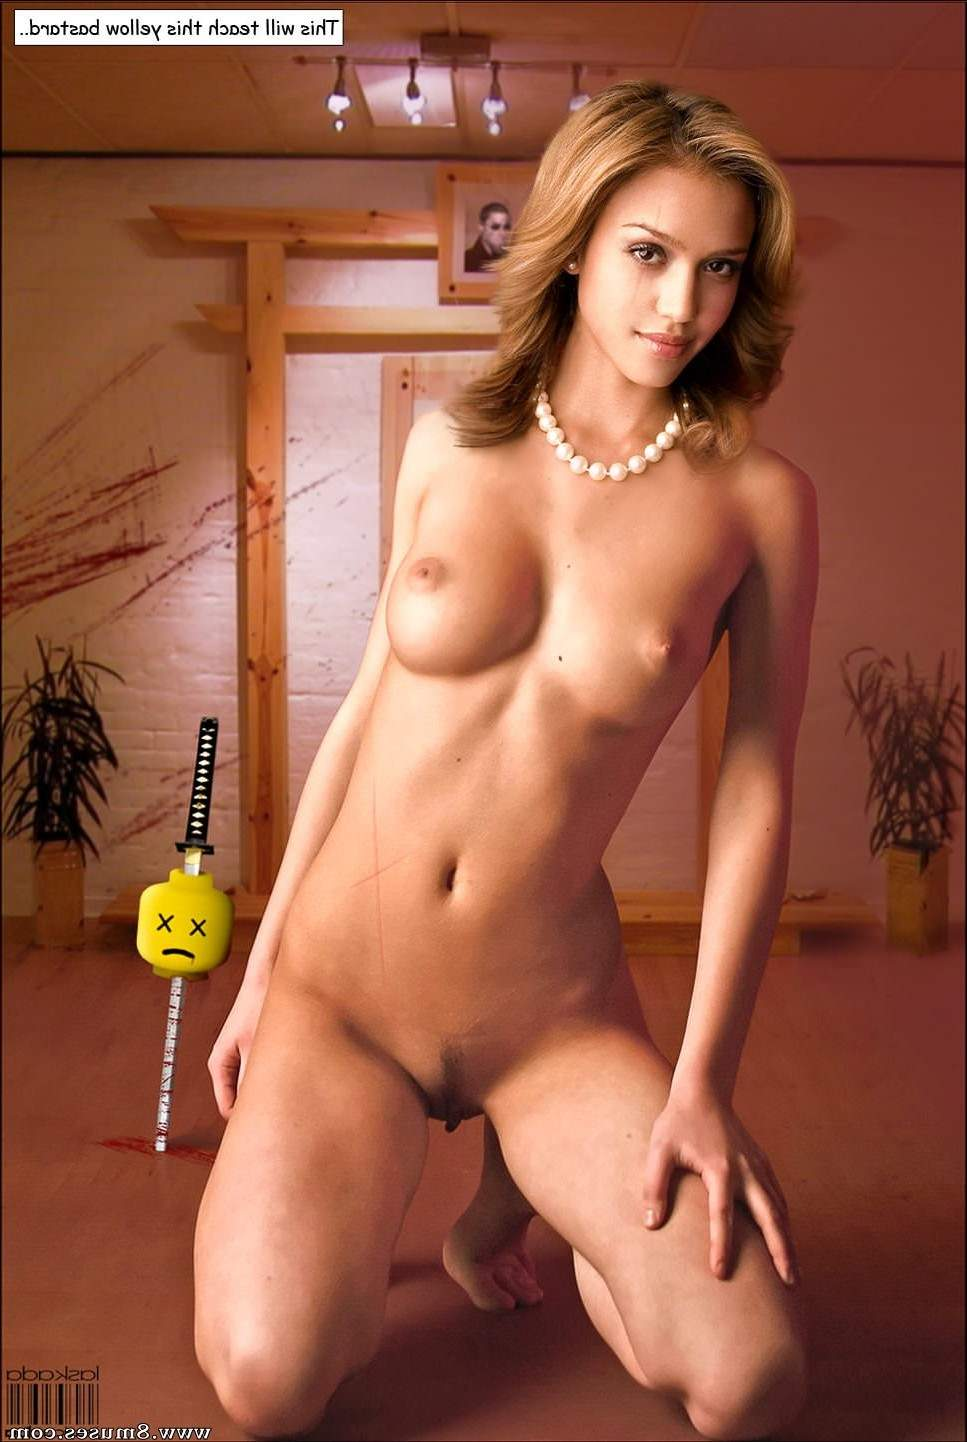 Fake-Celebrities-Sex-Pictures/Jessica-Alba Jessica_Alba__8muses_-_Sex_and_Porn_Comics_172.jpg